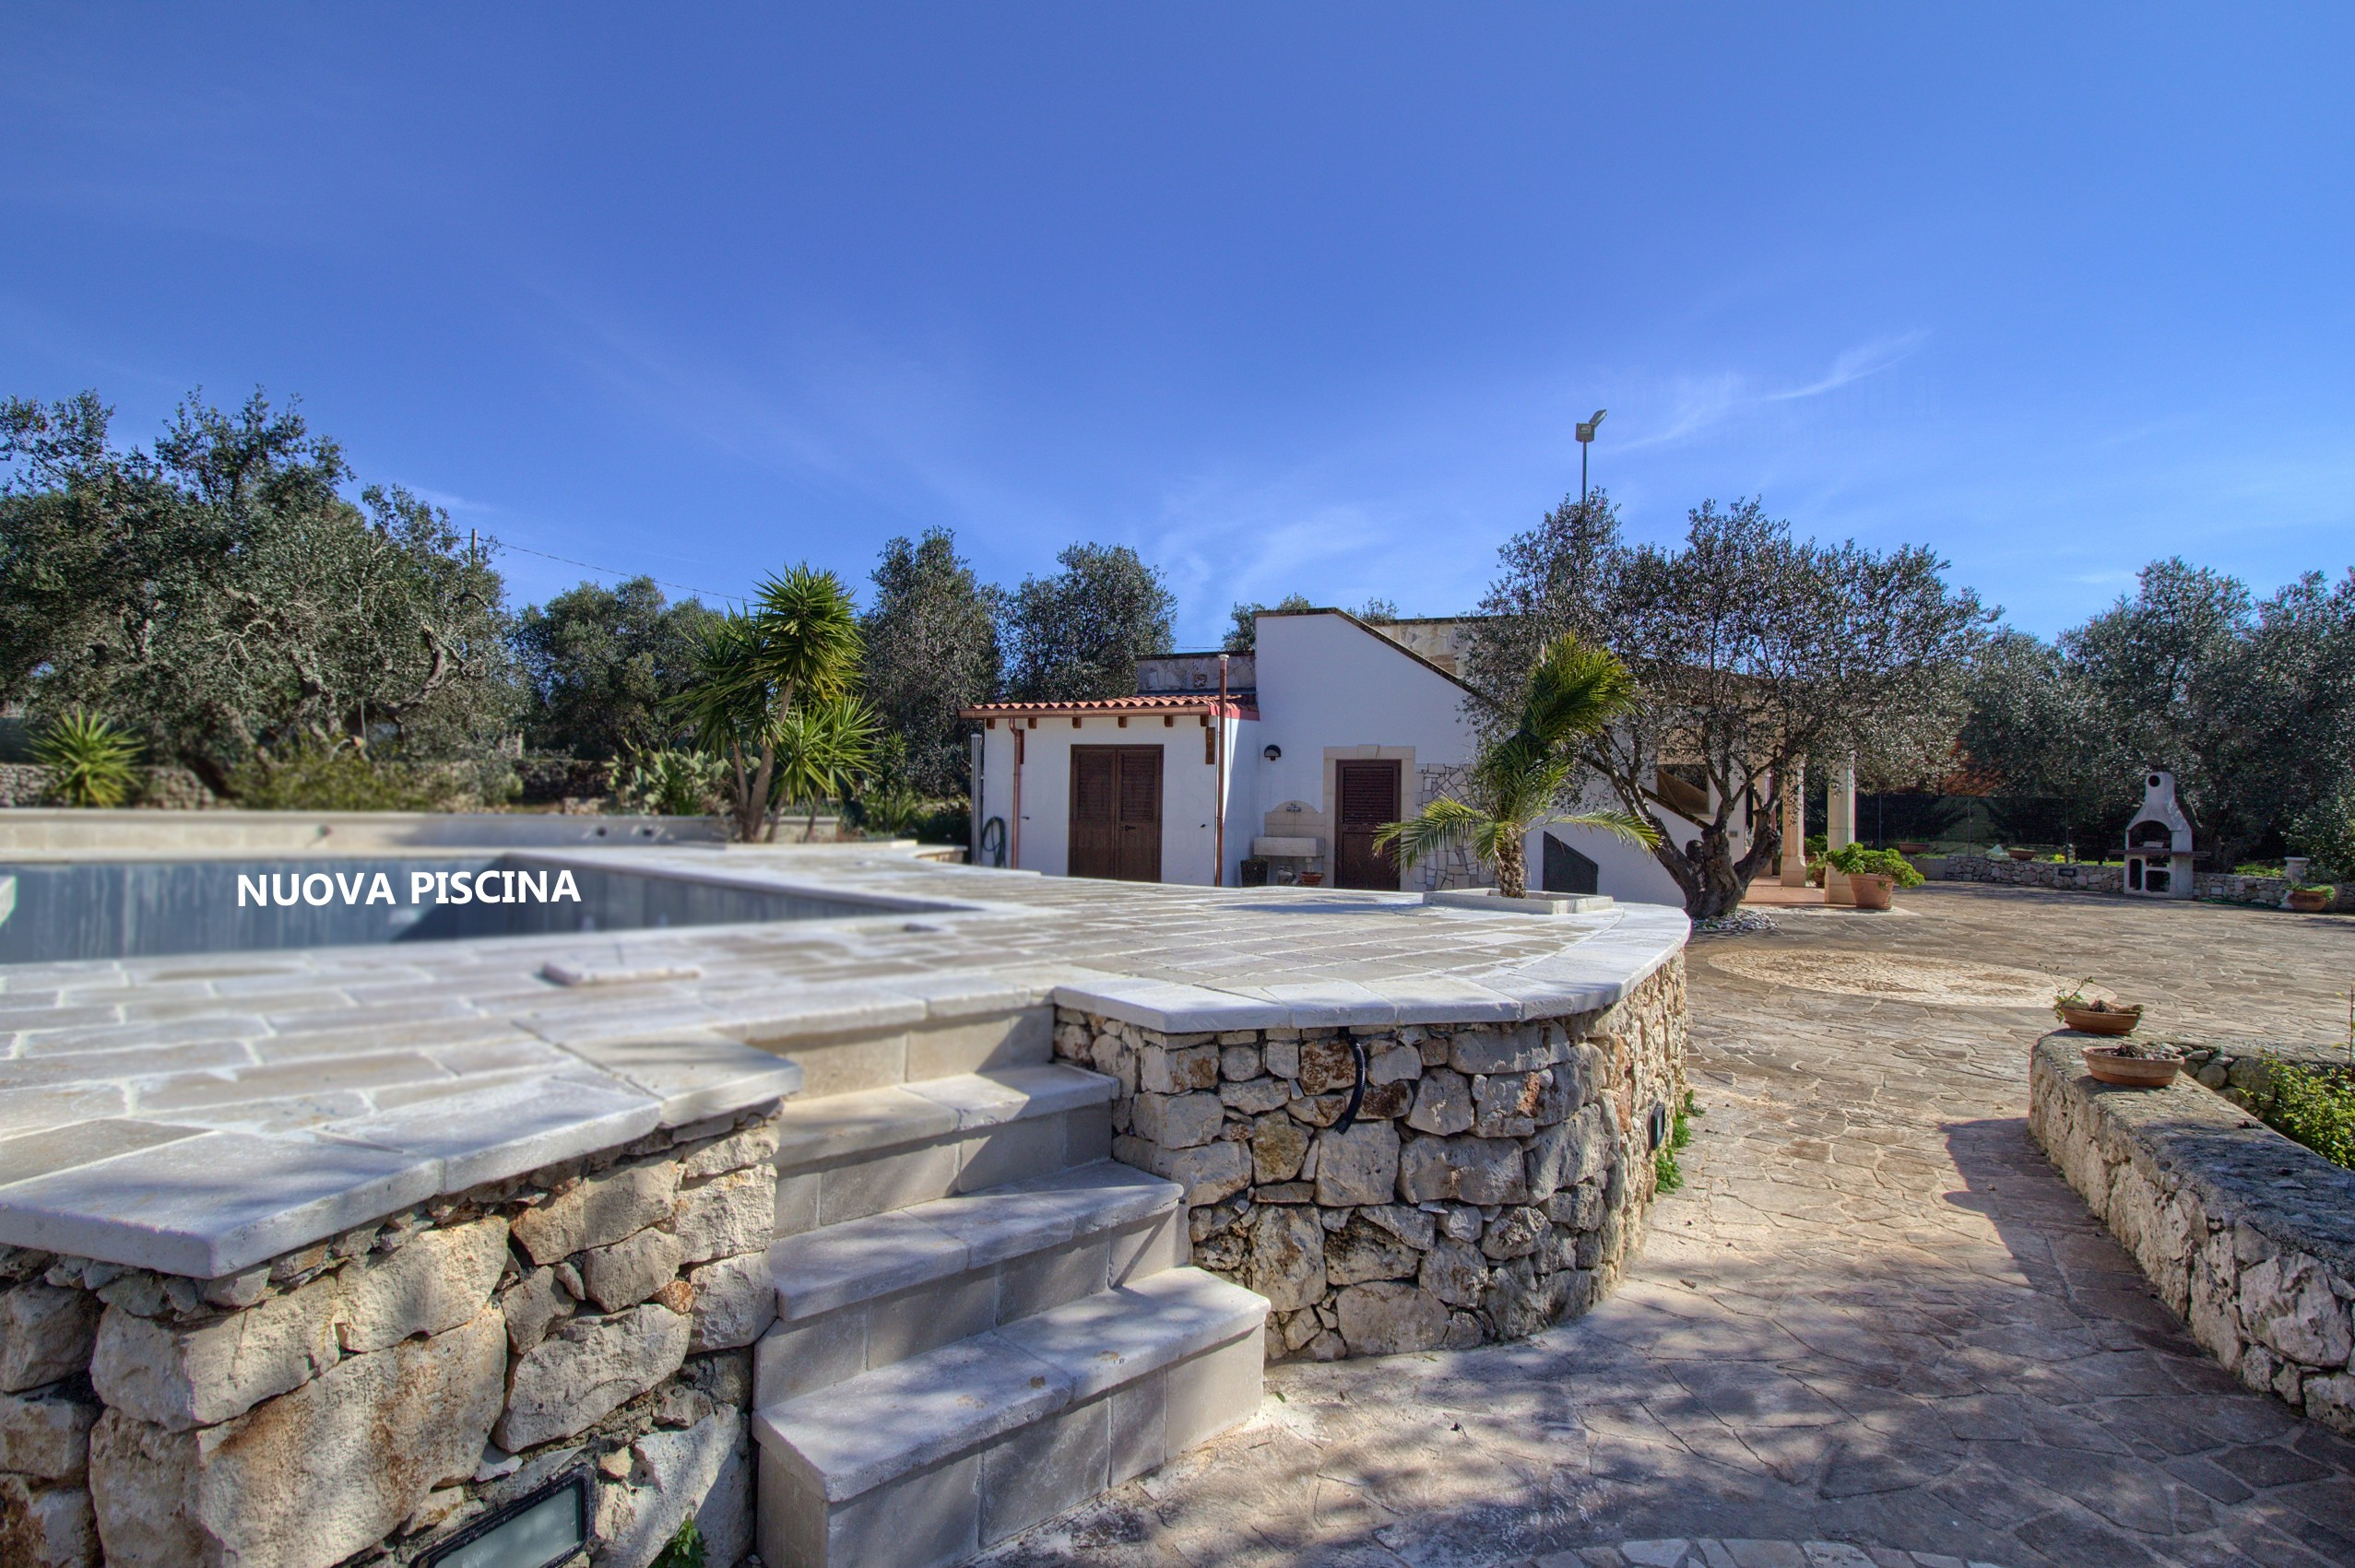 Cavaliere lovely pool home photo 22517544